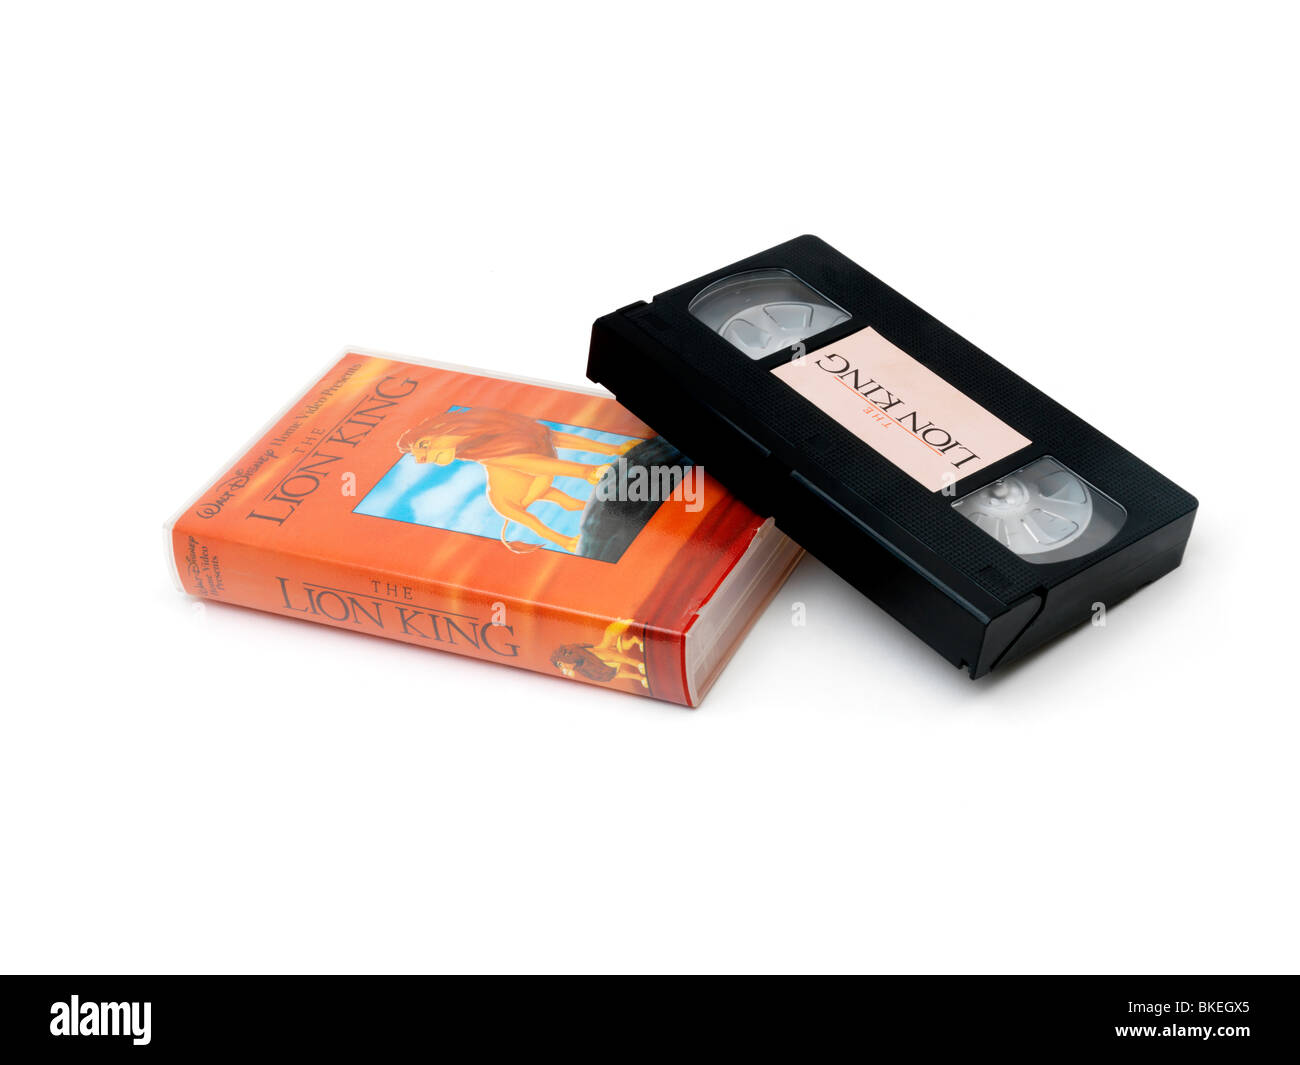 Video Cassette And Plastic Case Of The Lion King - Stock Image